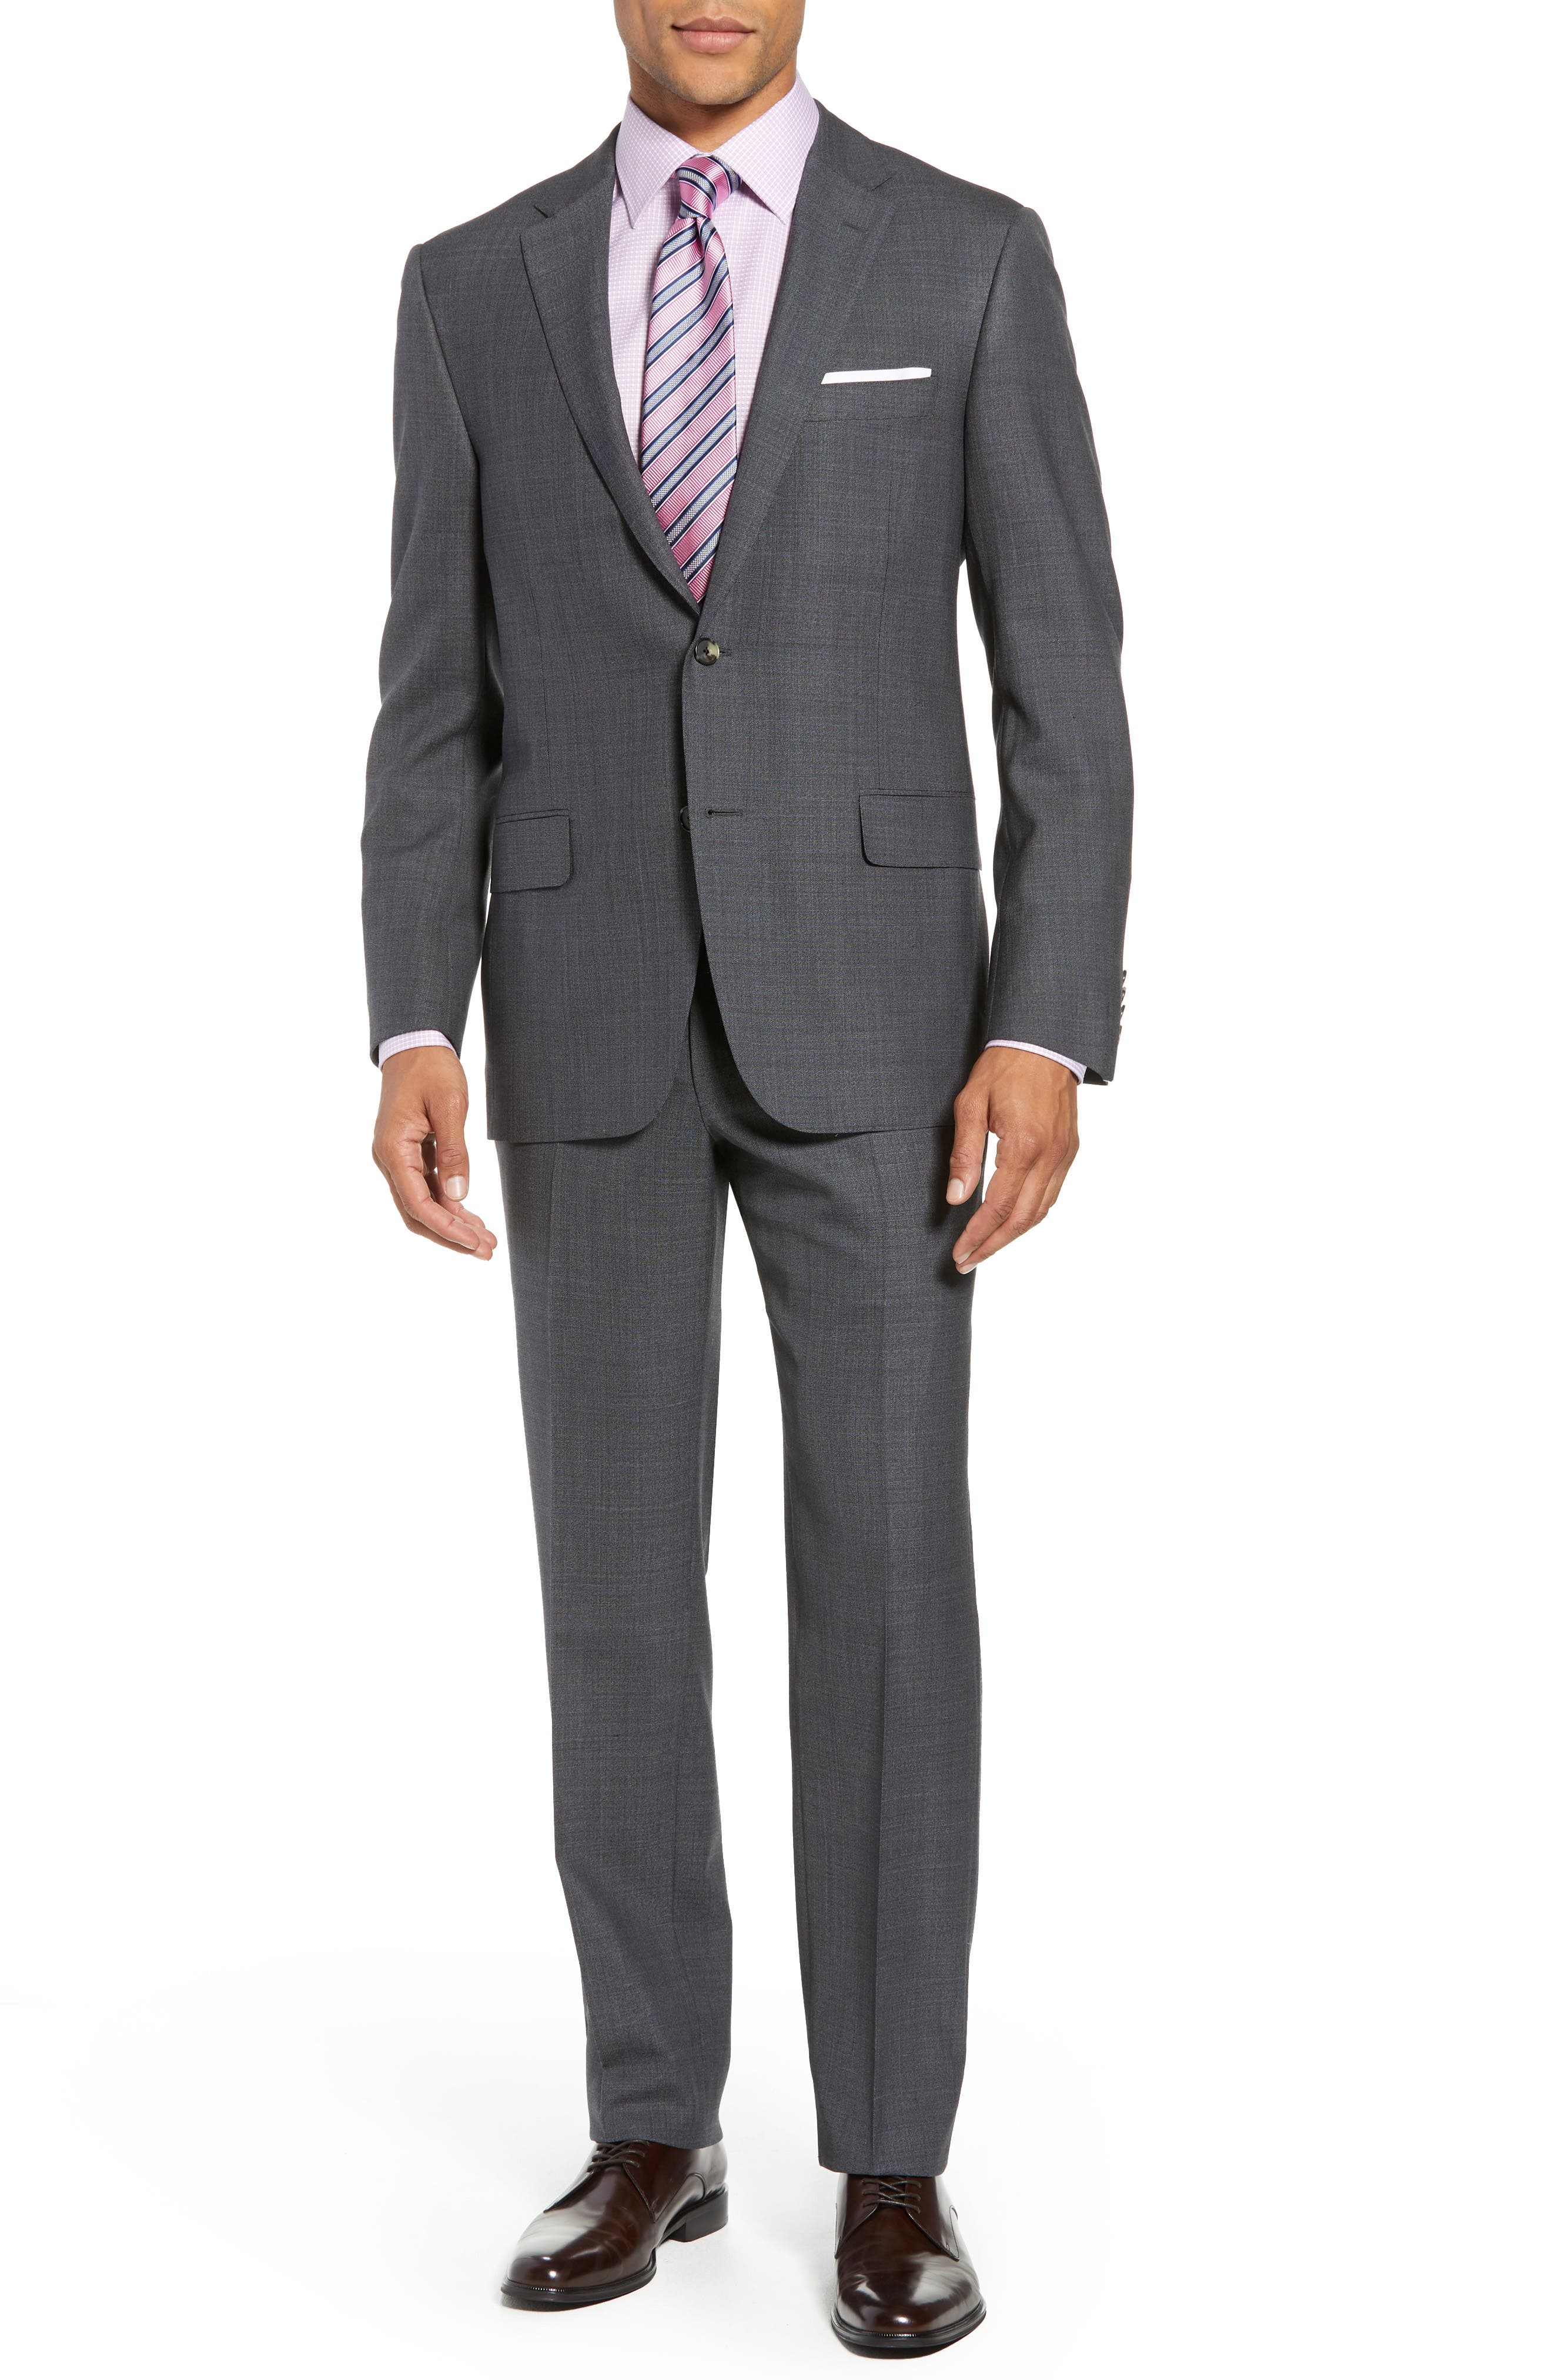 HICKEY FREEMAN CLASSIC FIT SOLID WOOL SUIT